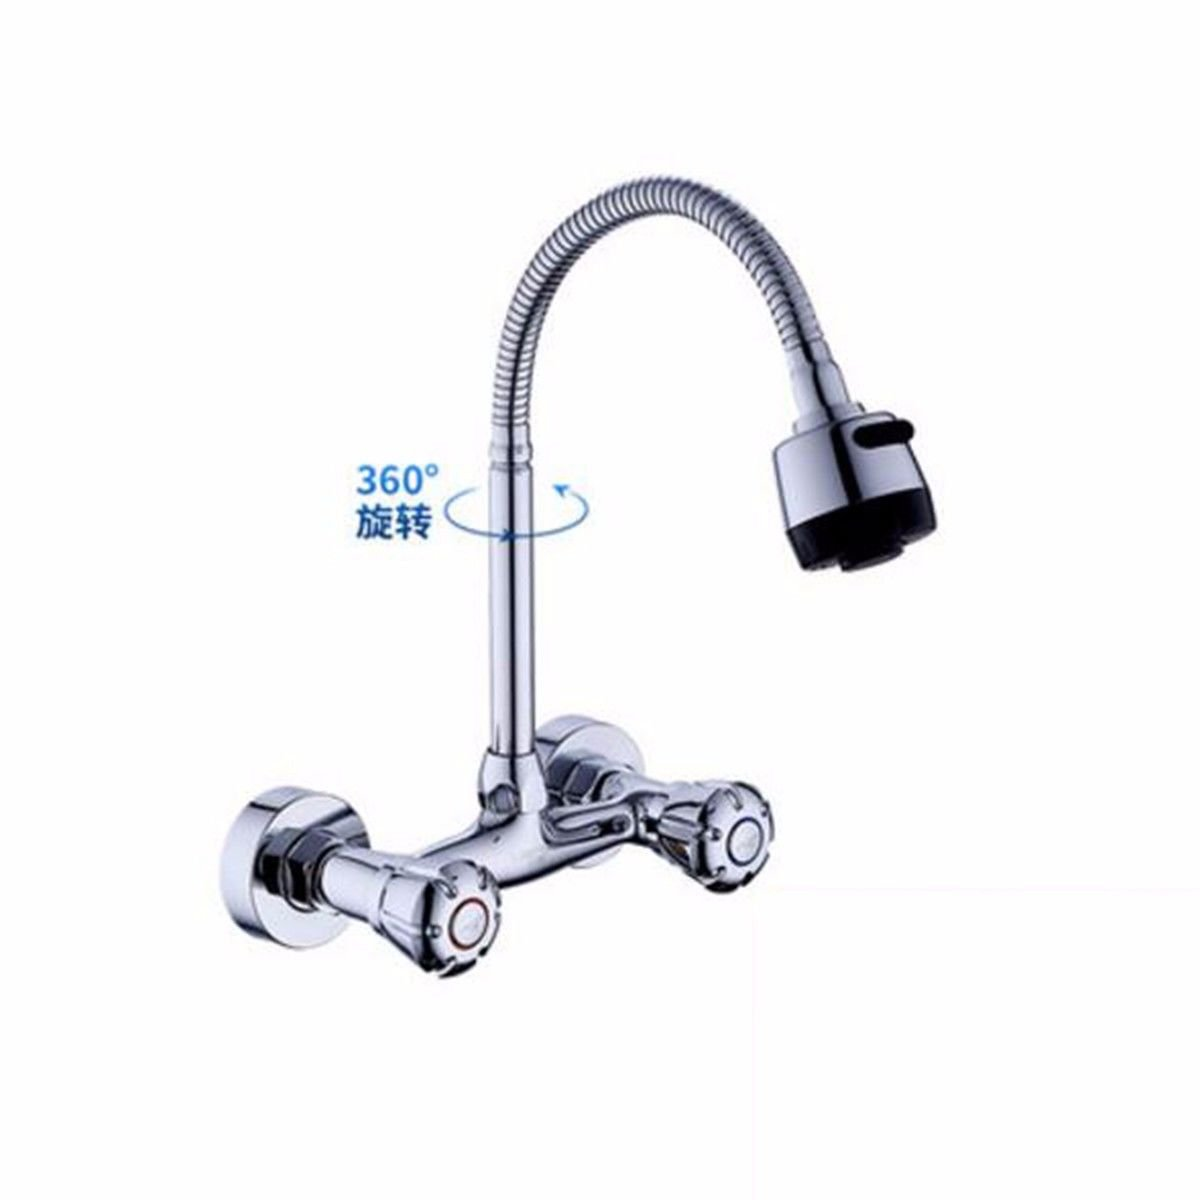 ETERNAL QUALITY Bathroom Sink Basin Tap Brass Mixer Tap Washroom Mixer Faucet The copper INTO THE WALL MOUNTED KITCHEN FAUCET hot and cold dishes-basin sink balcony laund